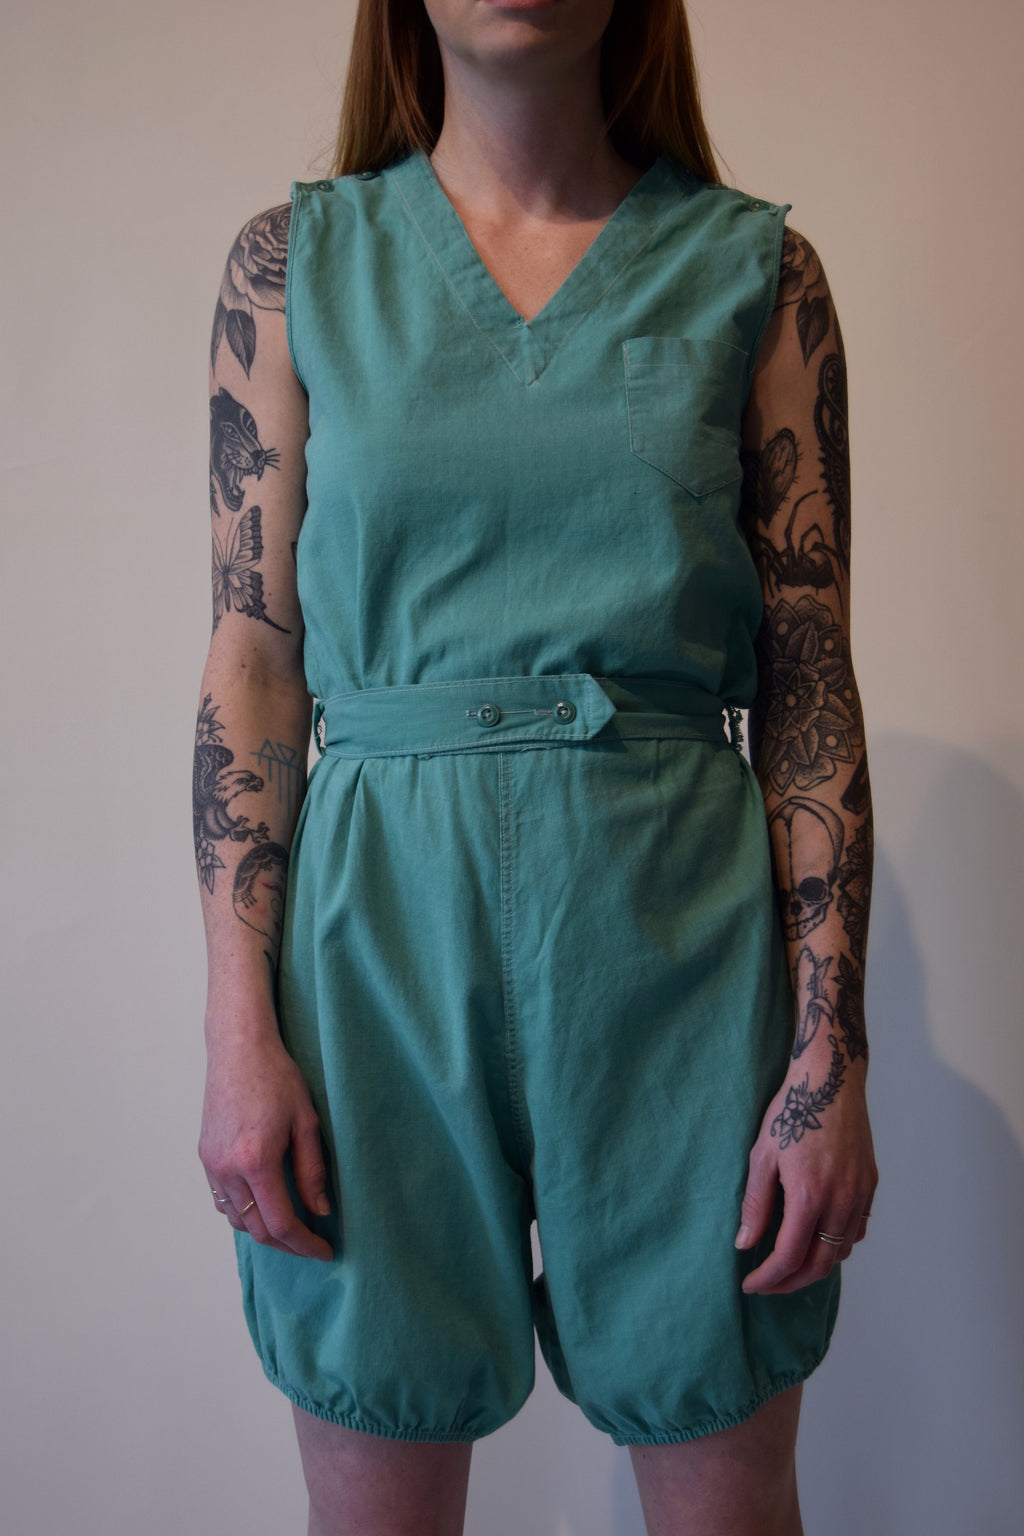 Vintage 1920's/1930's Seafoam Gym Outfit Romper with Embroidery